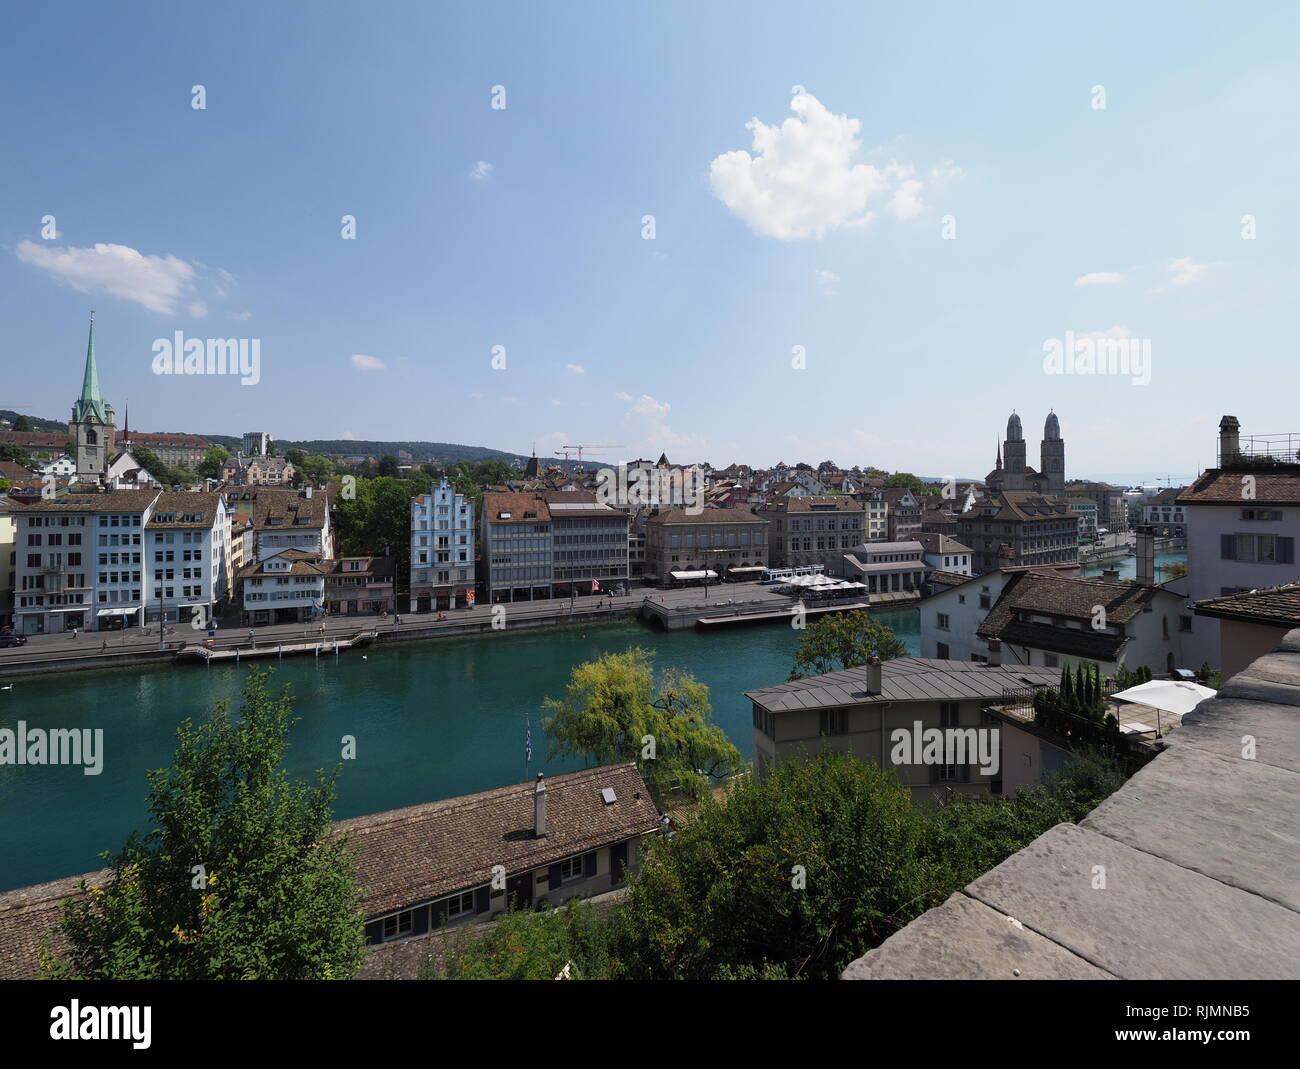 View of european Zurich city in Switzerland with houses on bank of Limmat river - Stock Image